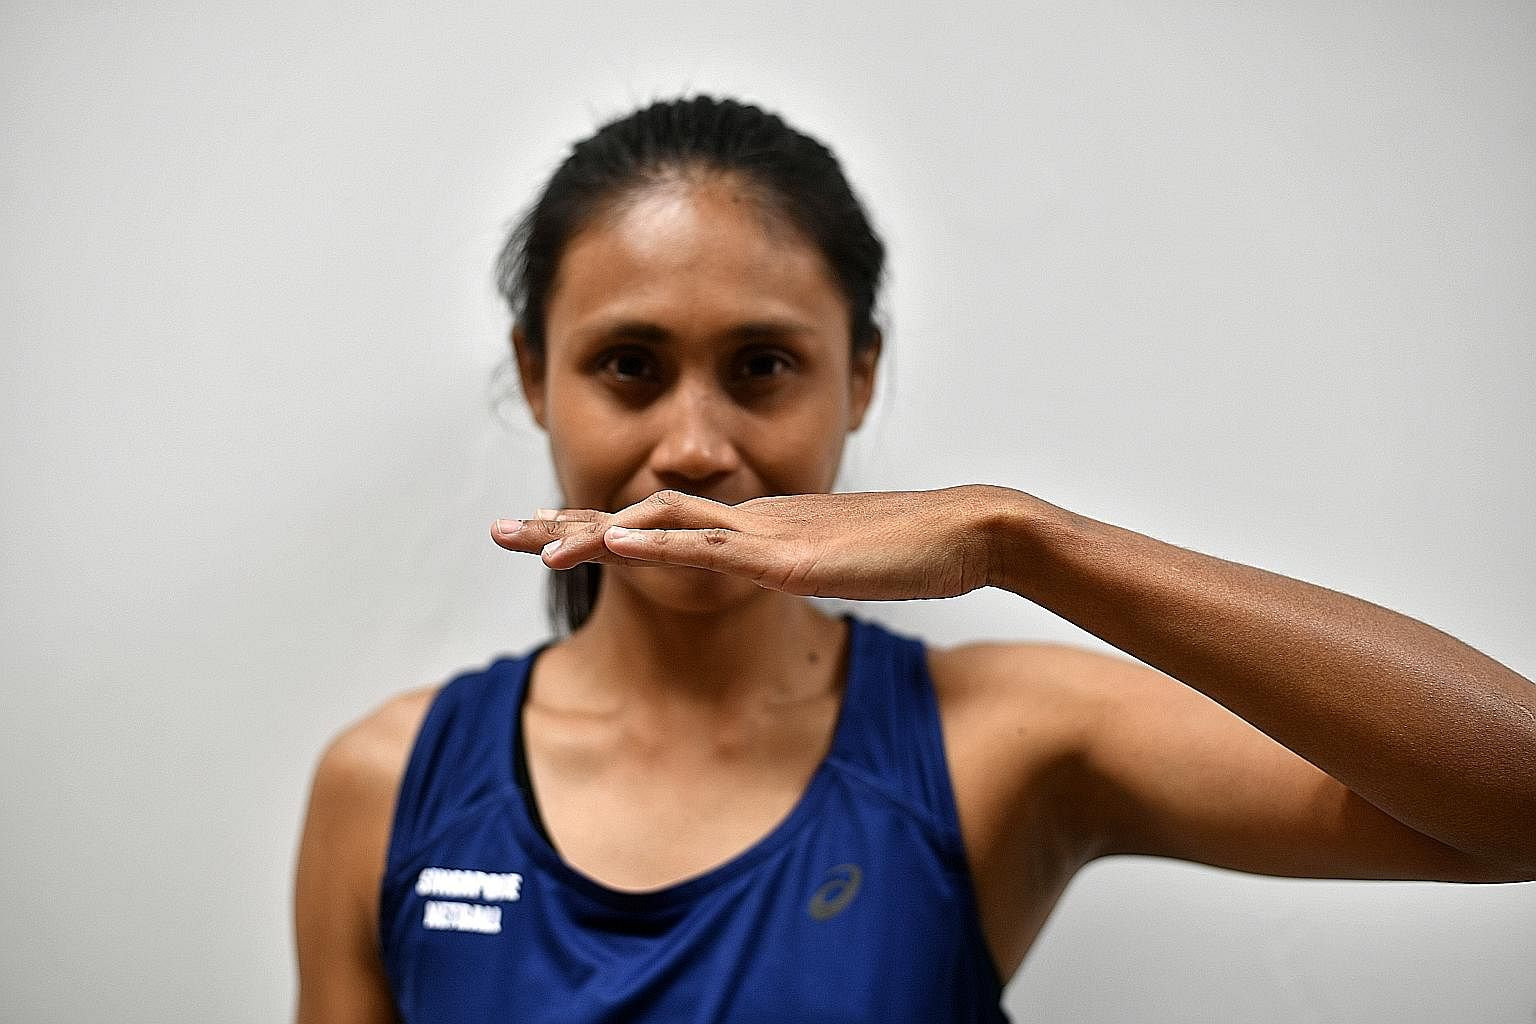 Nurul Baizura's ring finger remains bent after she caught a netball awkwardly in 2014. She even had to put her wedding ring on her right hand.